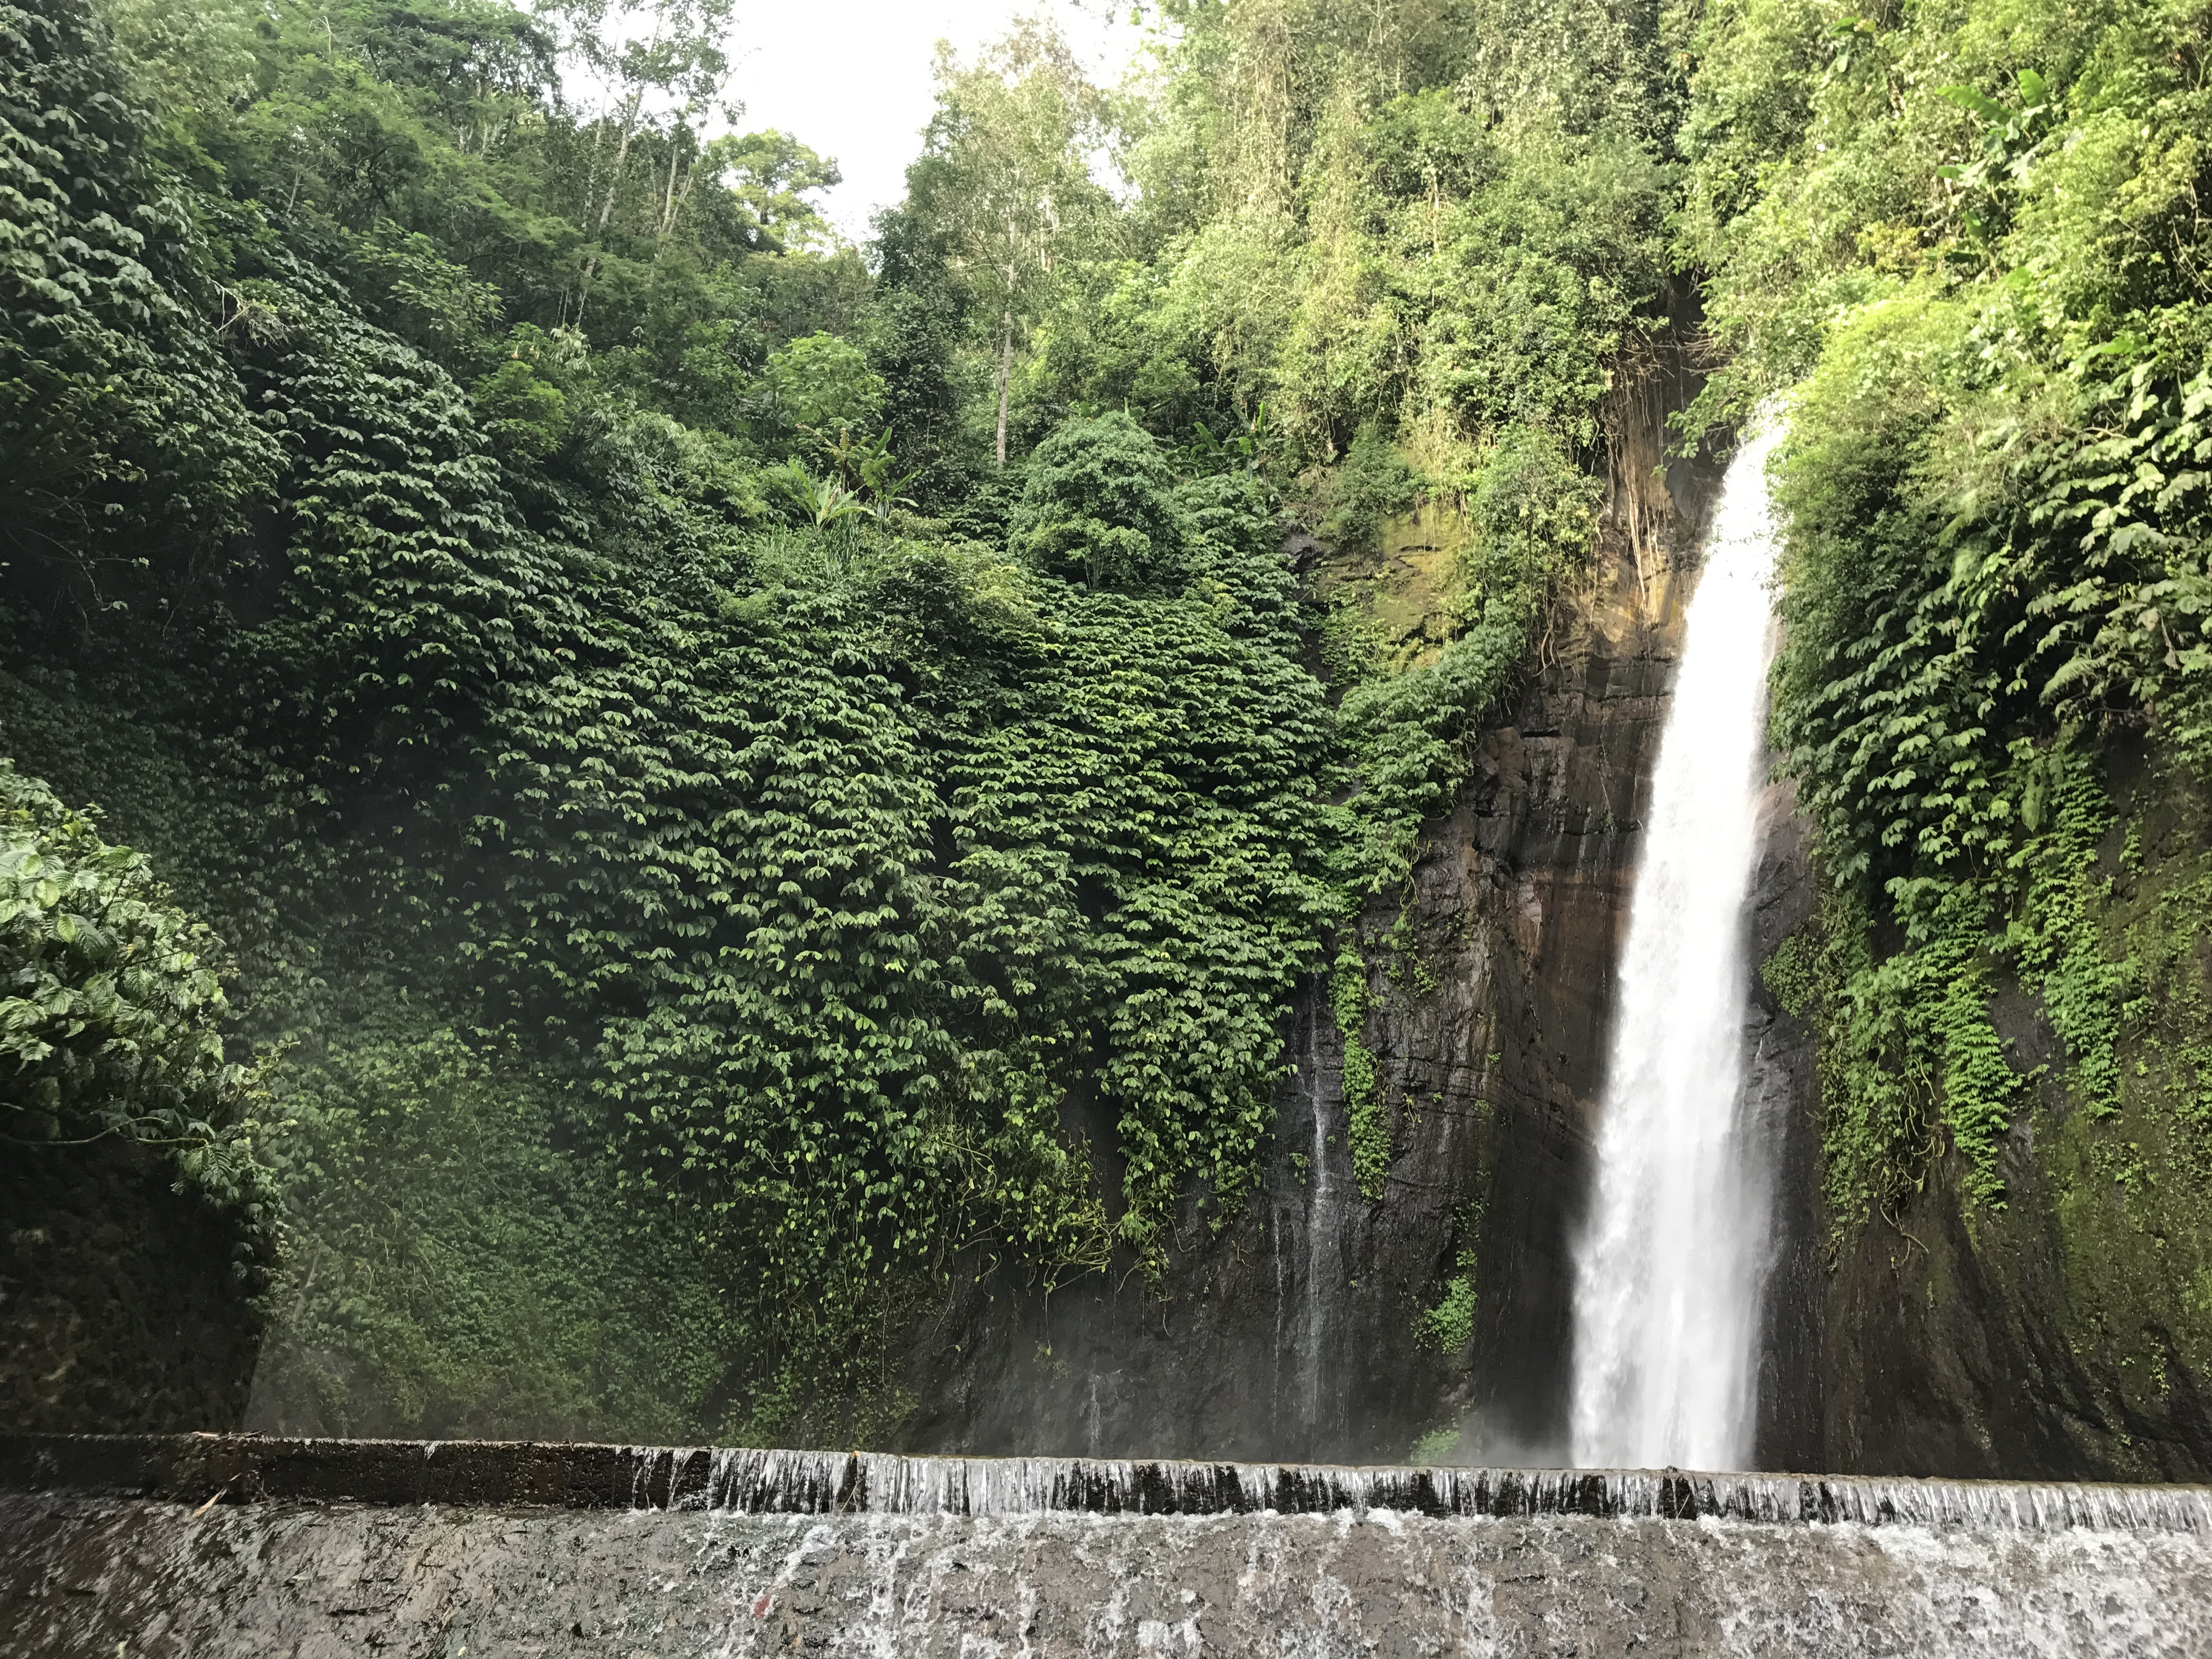 Munduk Waterfall in Buleleng Bali Indonesia